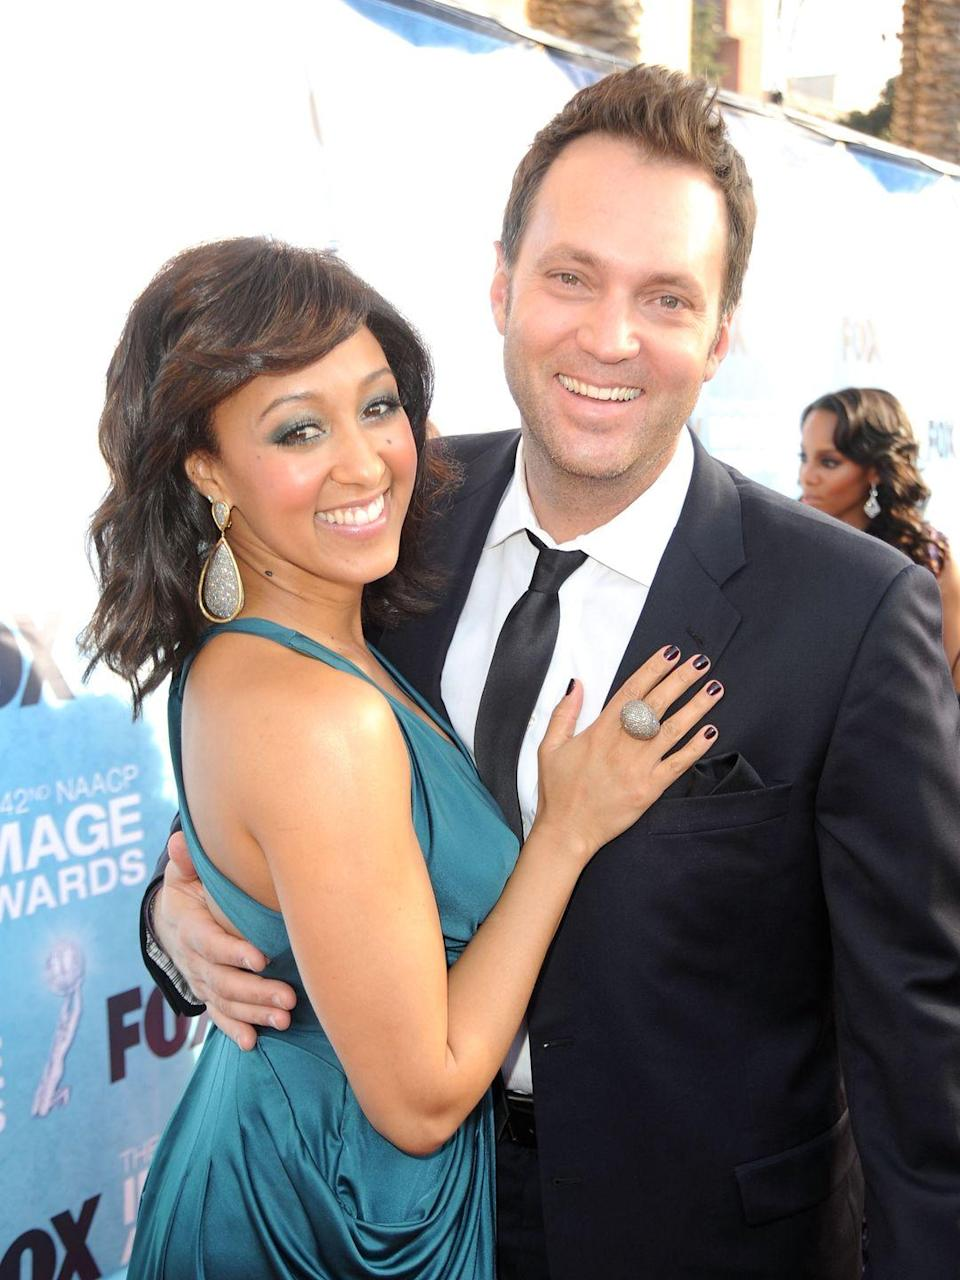 "<p>The <em>Sister, Sister</em> actress met her husband through their economics professor, Robert Sexton, at Pepperdine University. Housley noticed Mowry on the photo wall of Sexton's favorite students near his desk. </p><p>""Tia was on the wall too, my twin, but he pointed to my picture,"" Mowry <a href=""https://www.yahoo.com/lifestyle/tamera-mowry-fox-news-corresponded-adam-housley-dealt-lot-racial-junk-getting-married-183832906.html"" data-ylk=""slk:said to Yahoo!.;outcm:mb_qualified_link;_E:mb_qualified_link;ct:story;"" class=""link rapid-noclick-resp yahoo-link"">said to <em>Yahoo!</em>.</a> </p><p>At the time, she was focused on her career and told the professor to give Housley her email. She wasn't interested in a relationship and thought it would be easier to let the potential suitor down virtually. Her mind soon changed, though, when she received Housley's email. </p><p>""I always say, 'He got me with his words,'"" Mowry has said. They married in 2011 and have two children together. </p>"